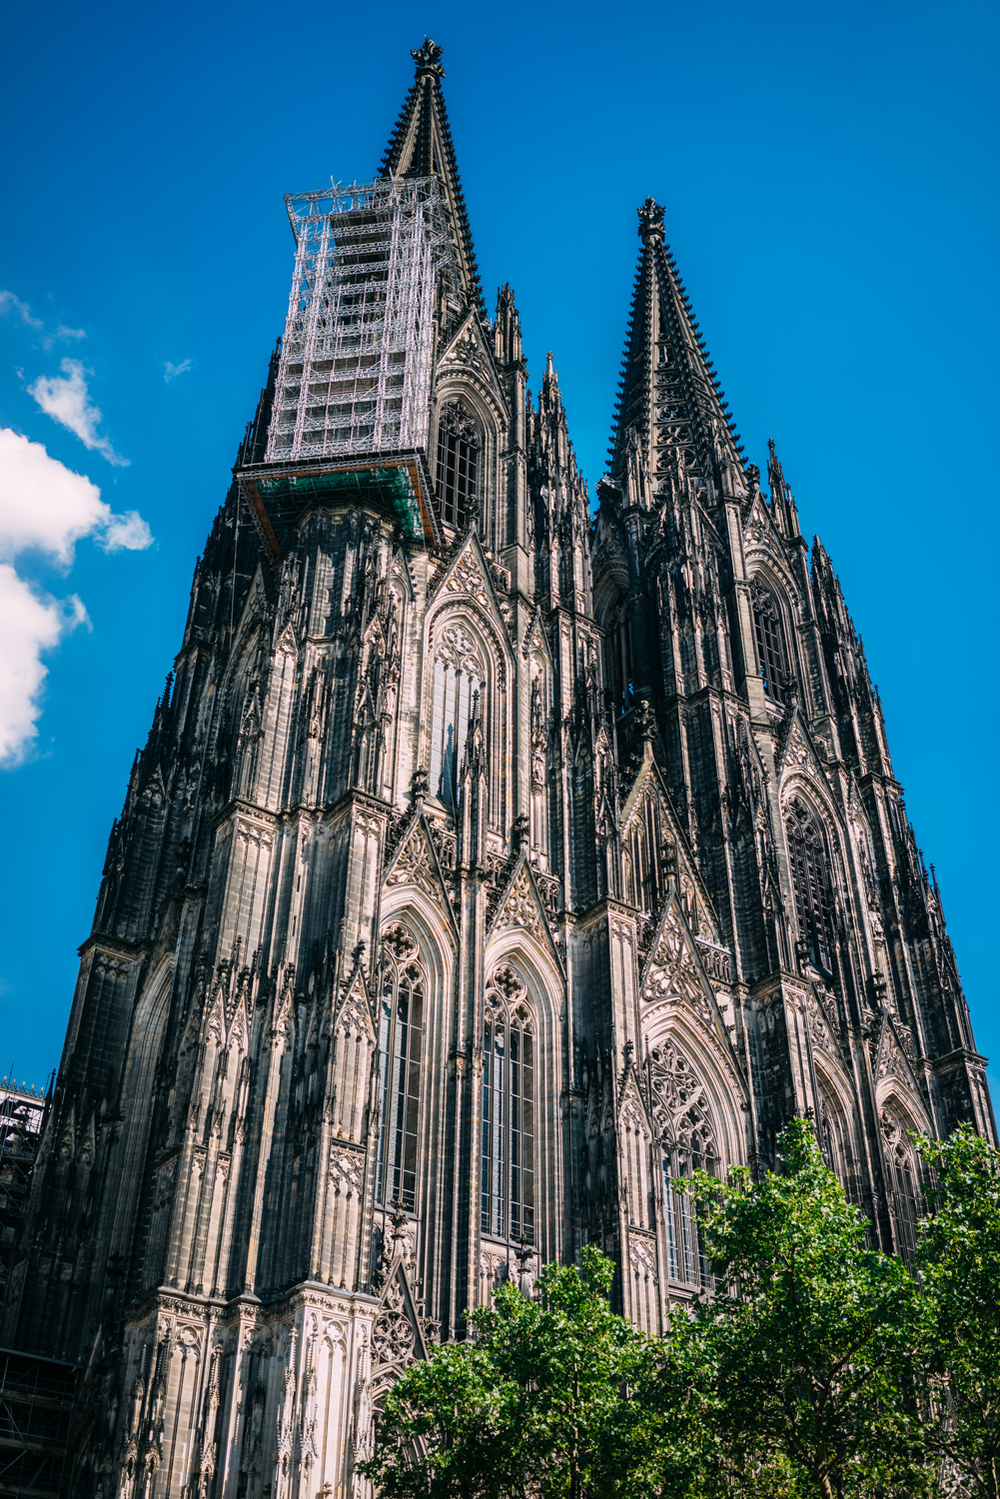 The Cologne Cathedral took 600 years to build.